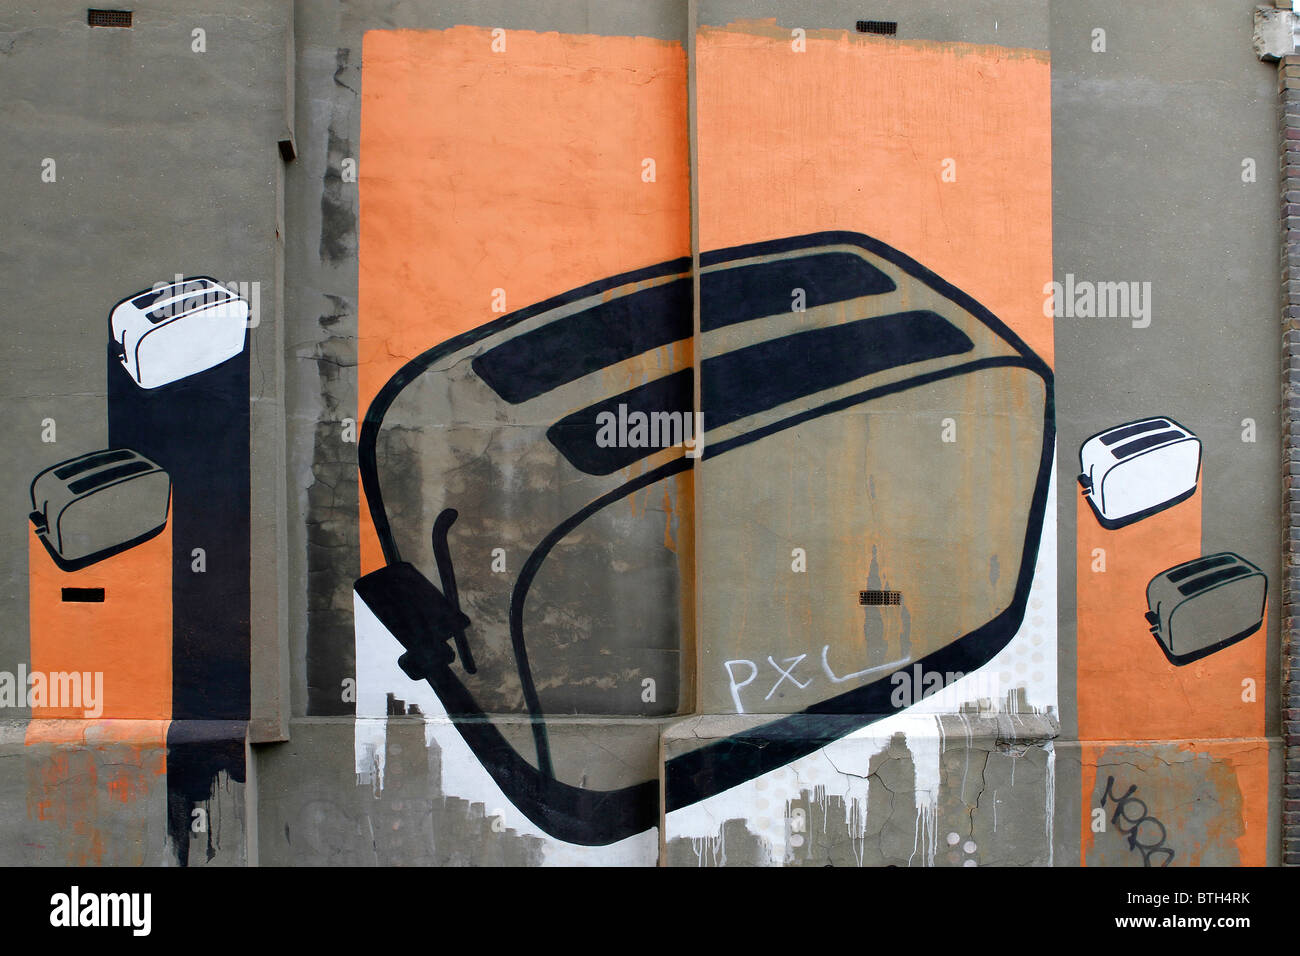 toaster stencil graffiti street art in Shoreditch London, urban art, - Stock Image